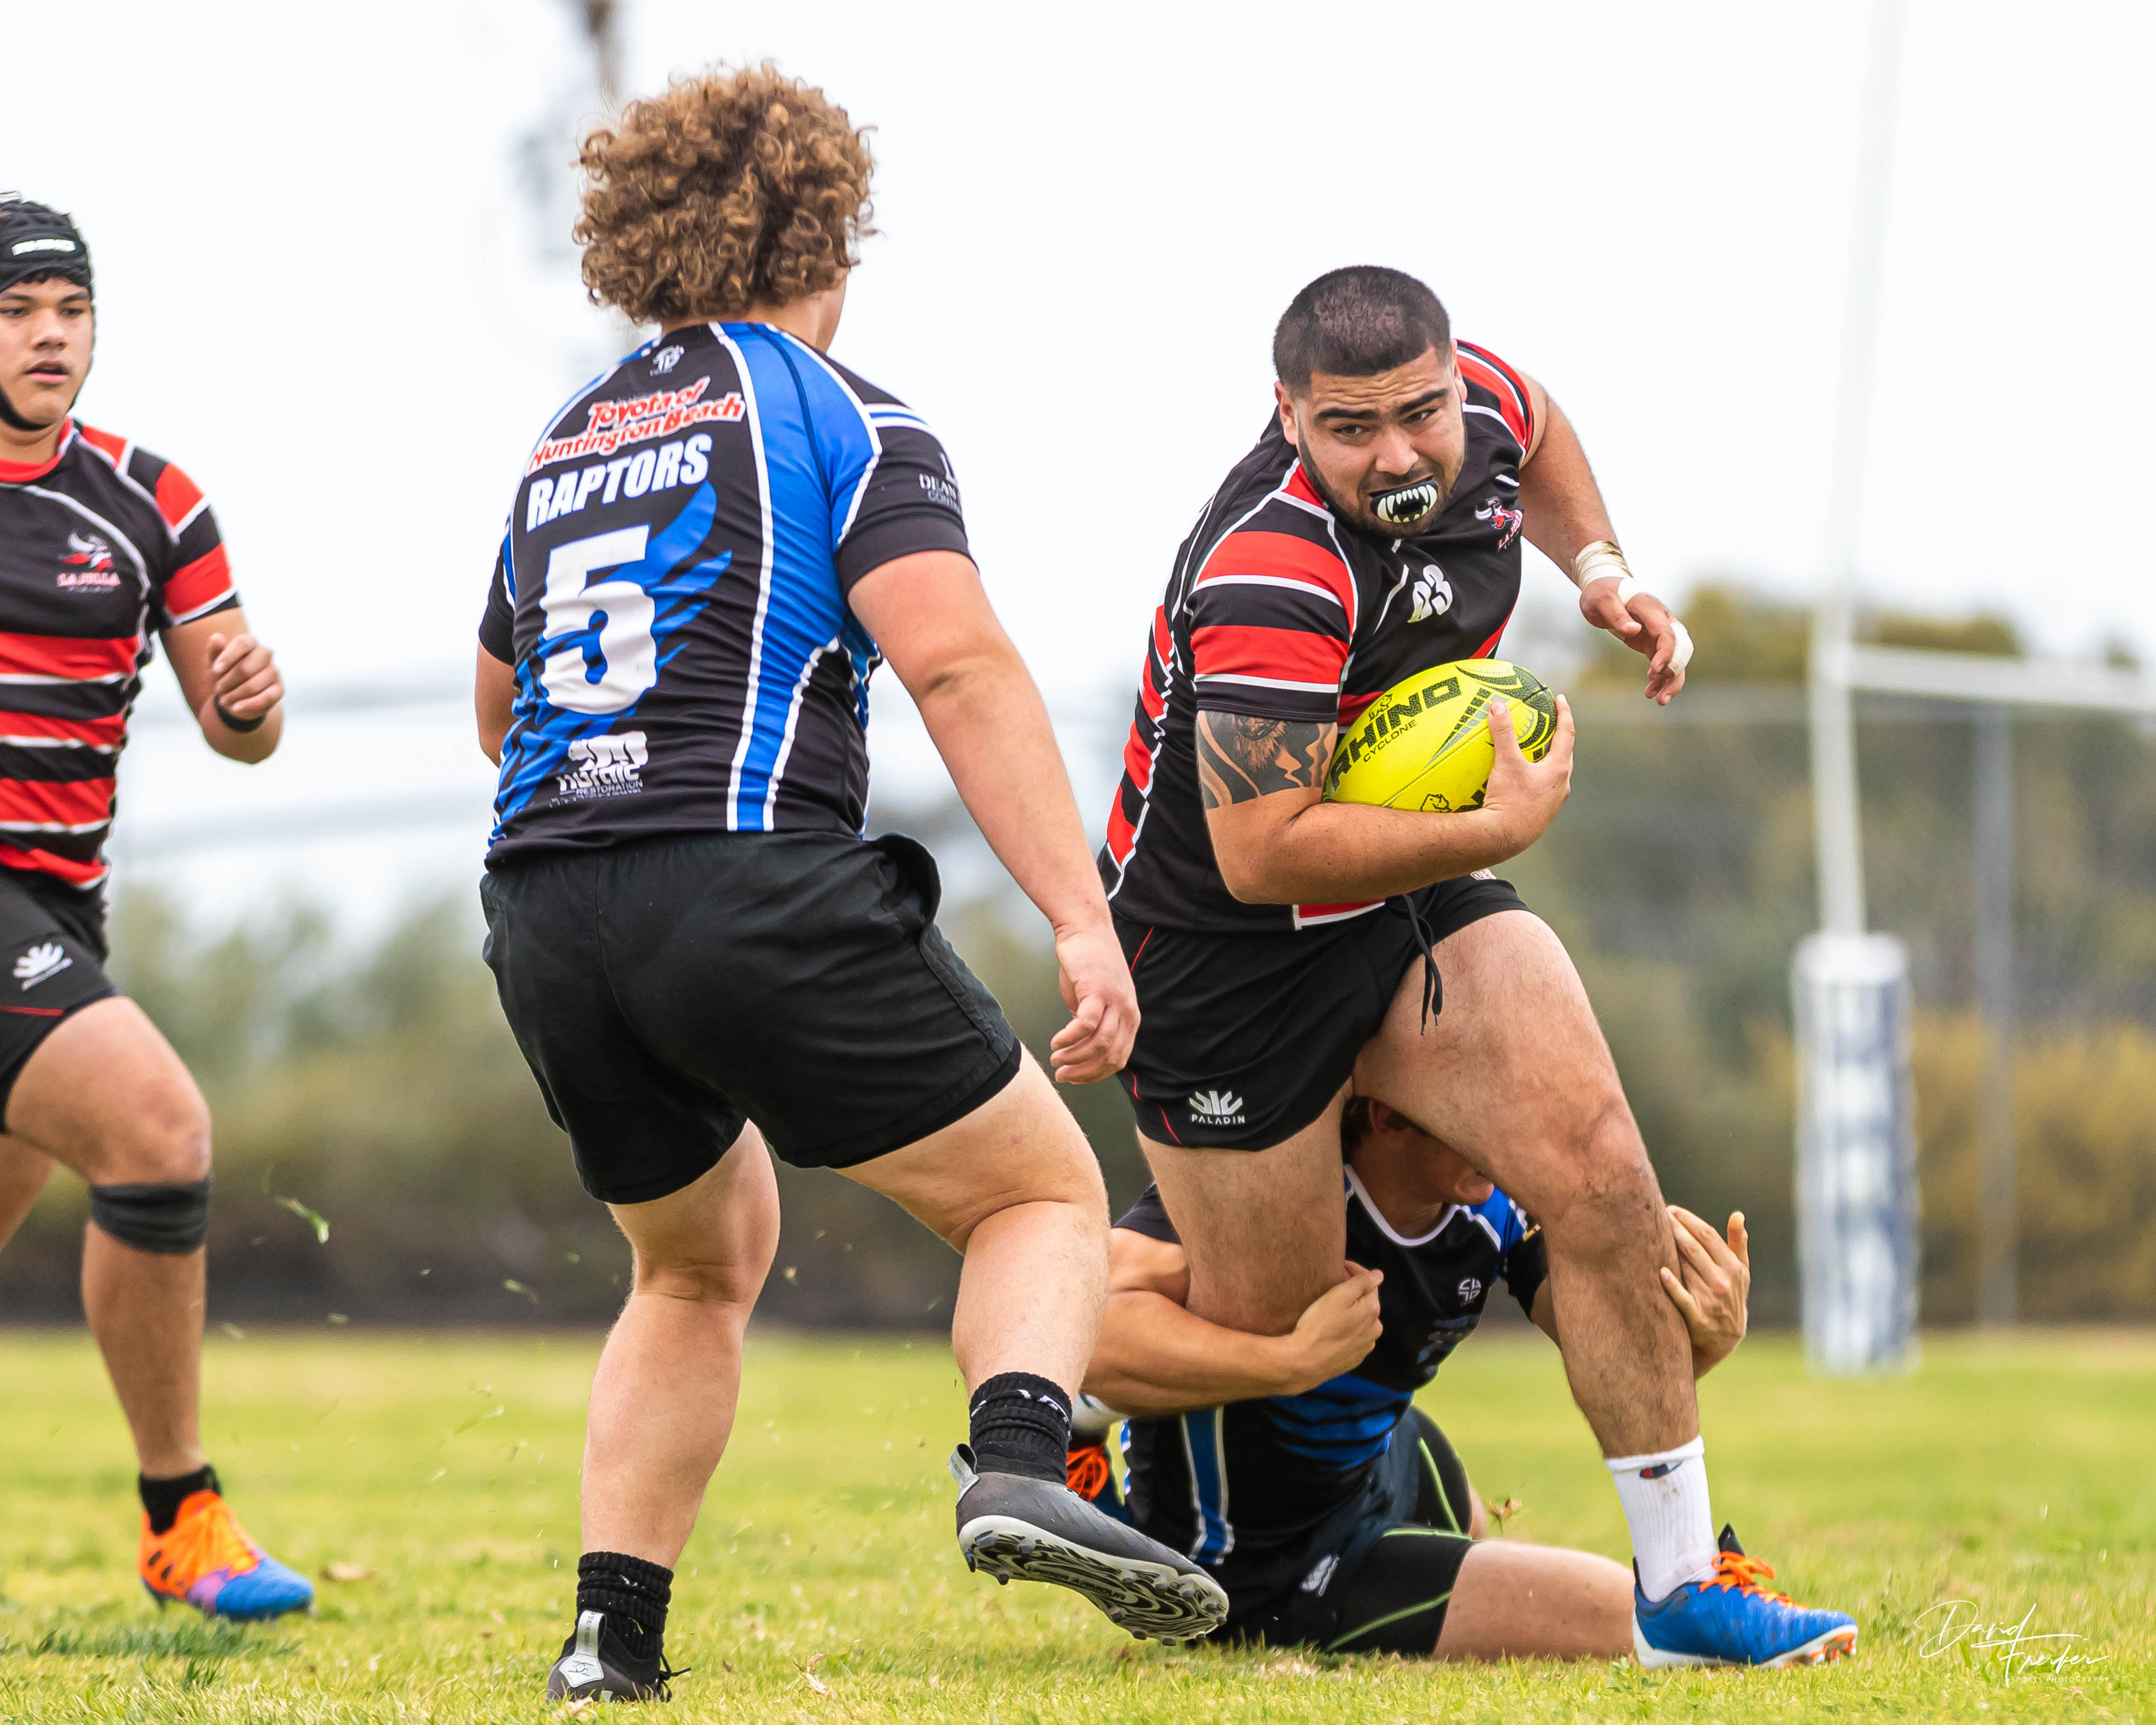 LaJollaRugby57